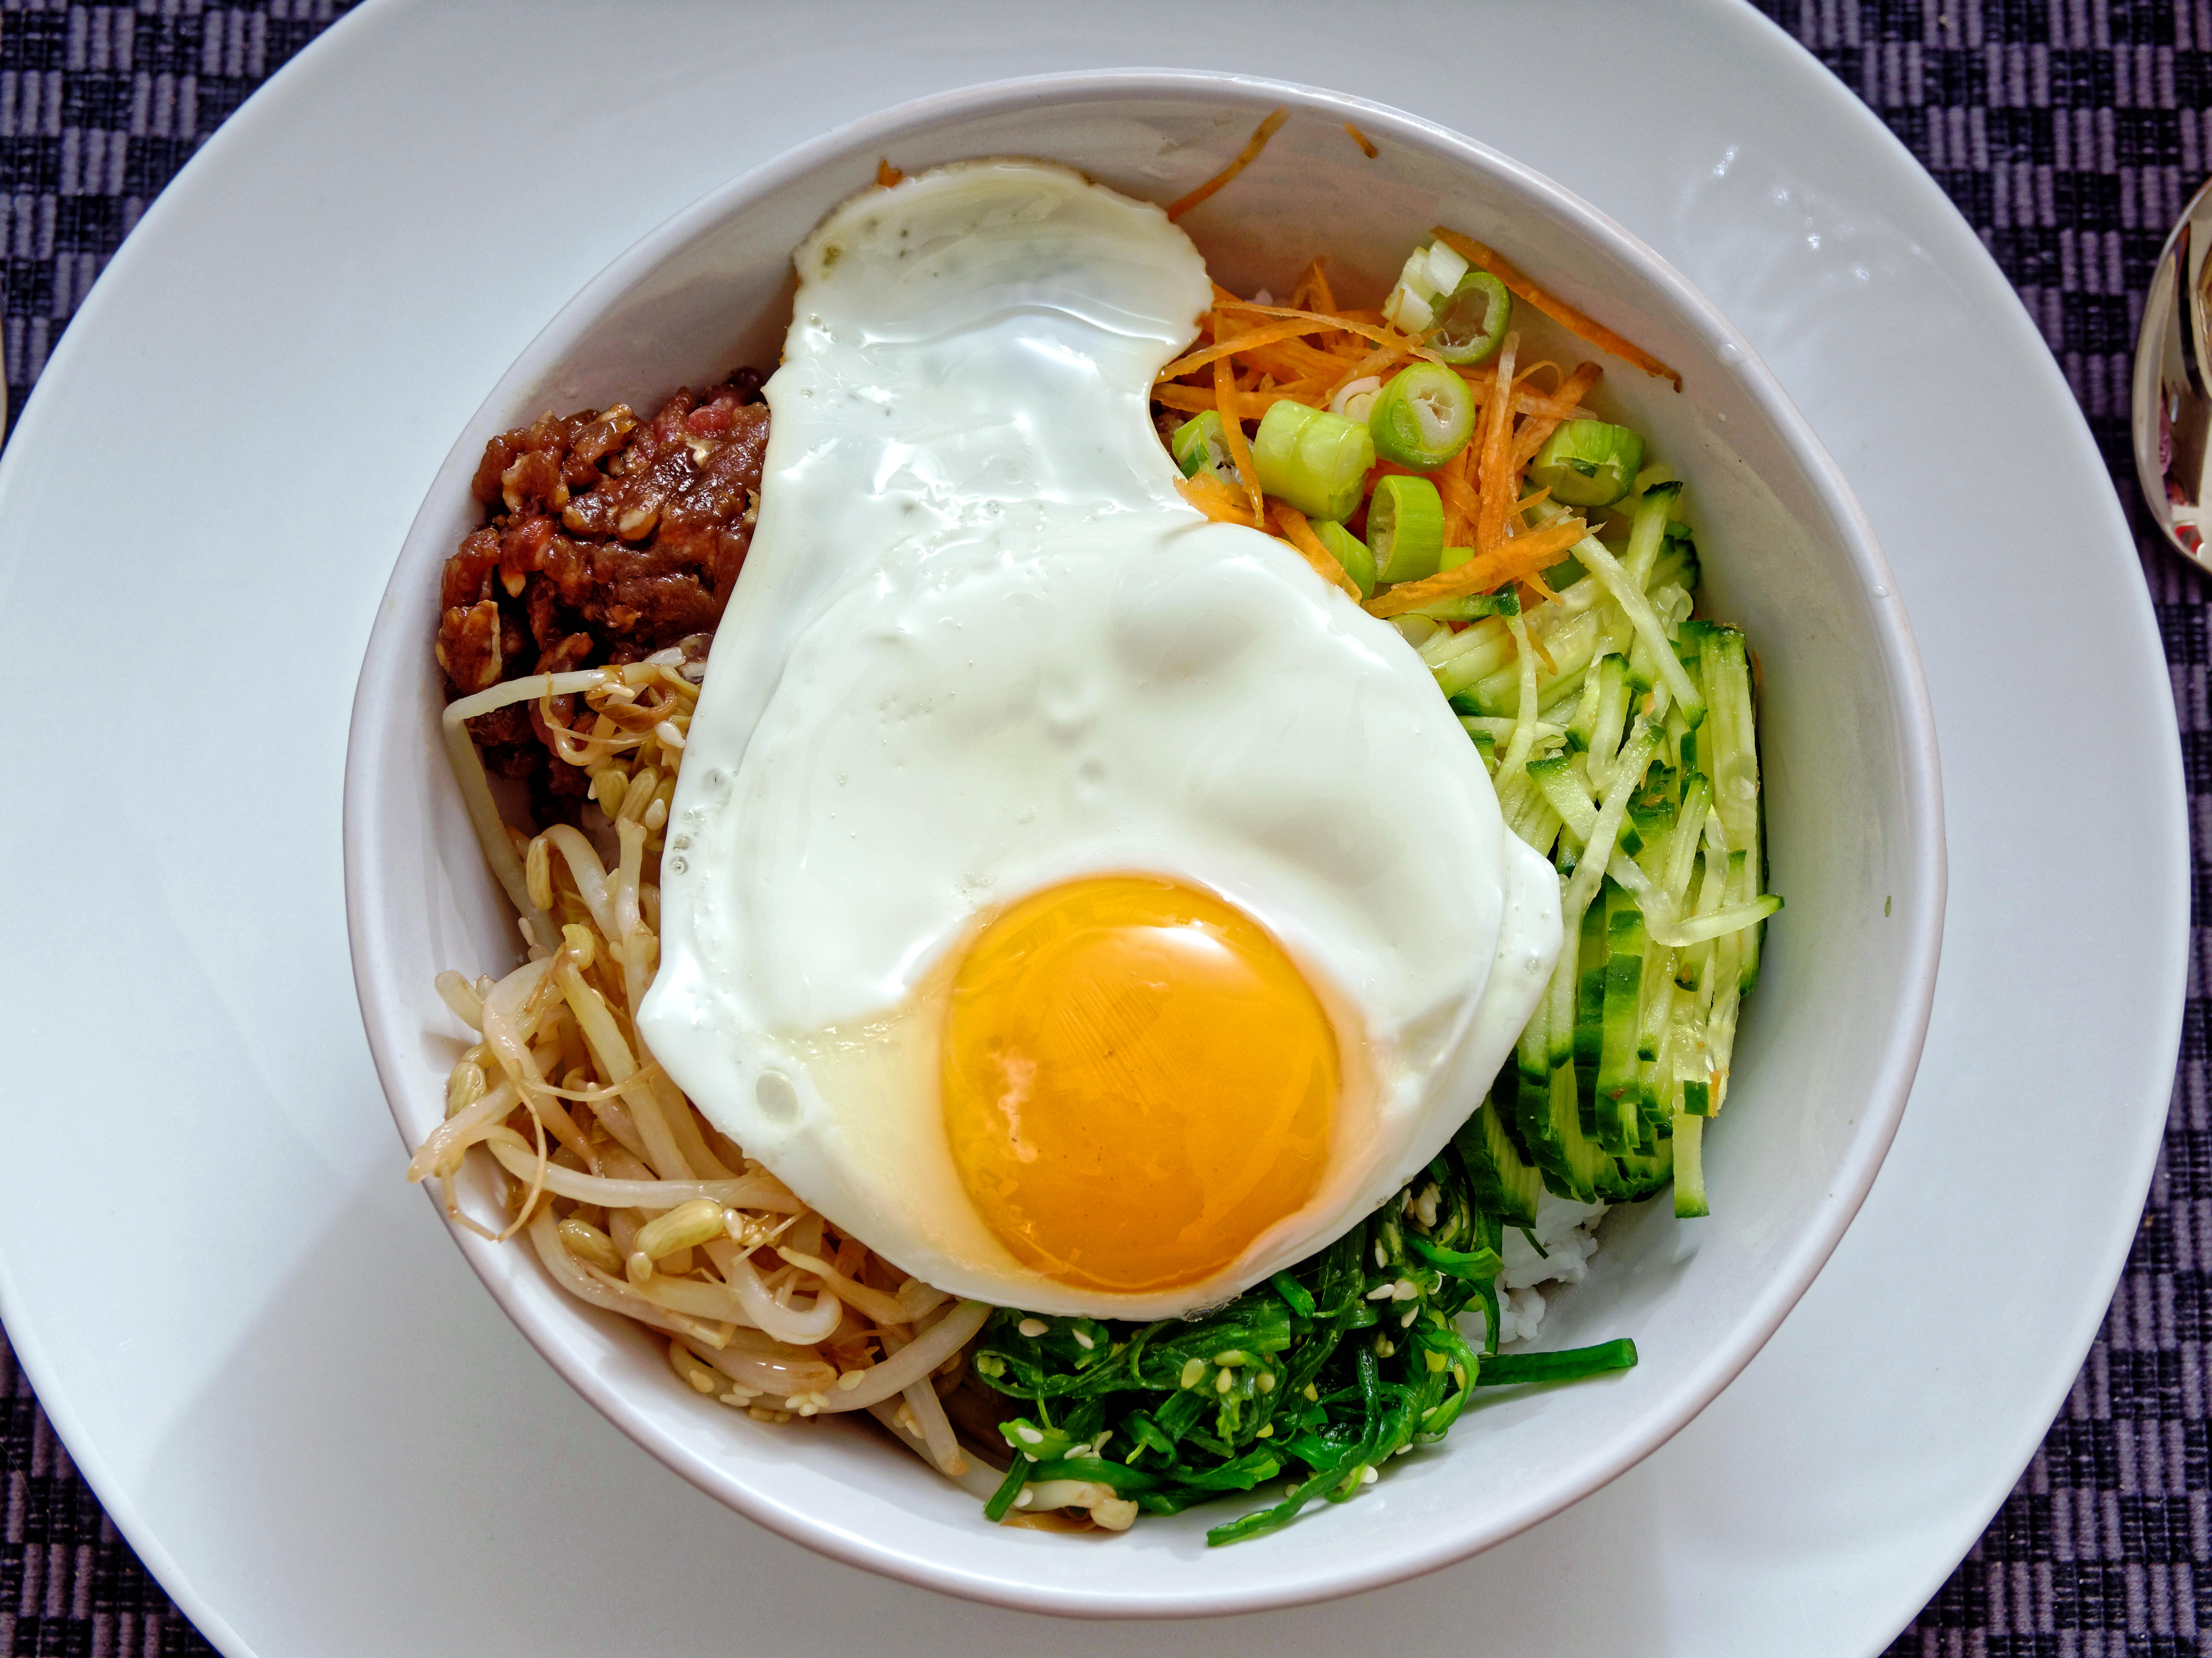 This should be Bibimbap-2.jpeg.  Is it missing?